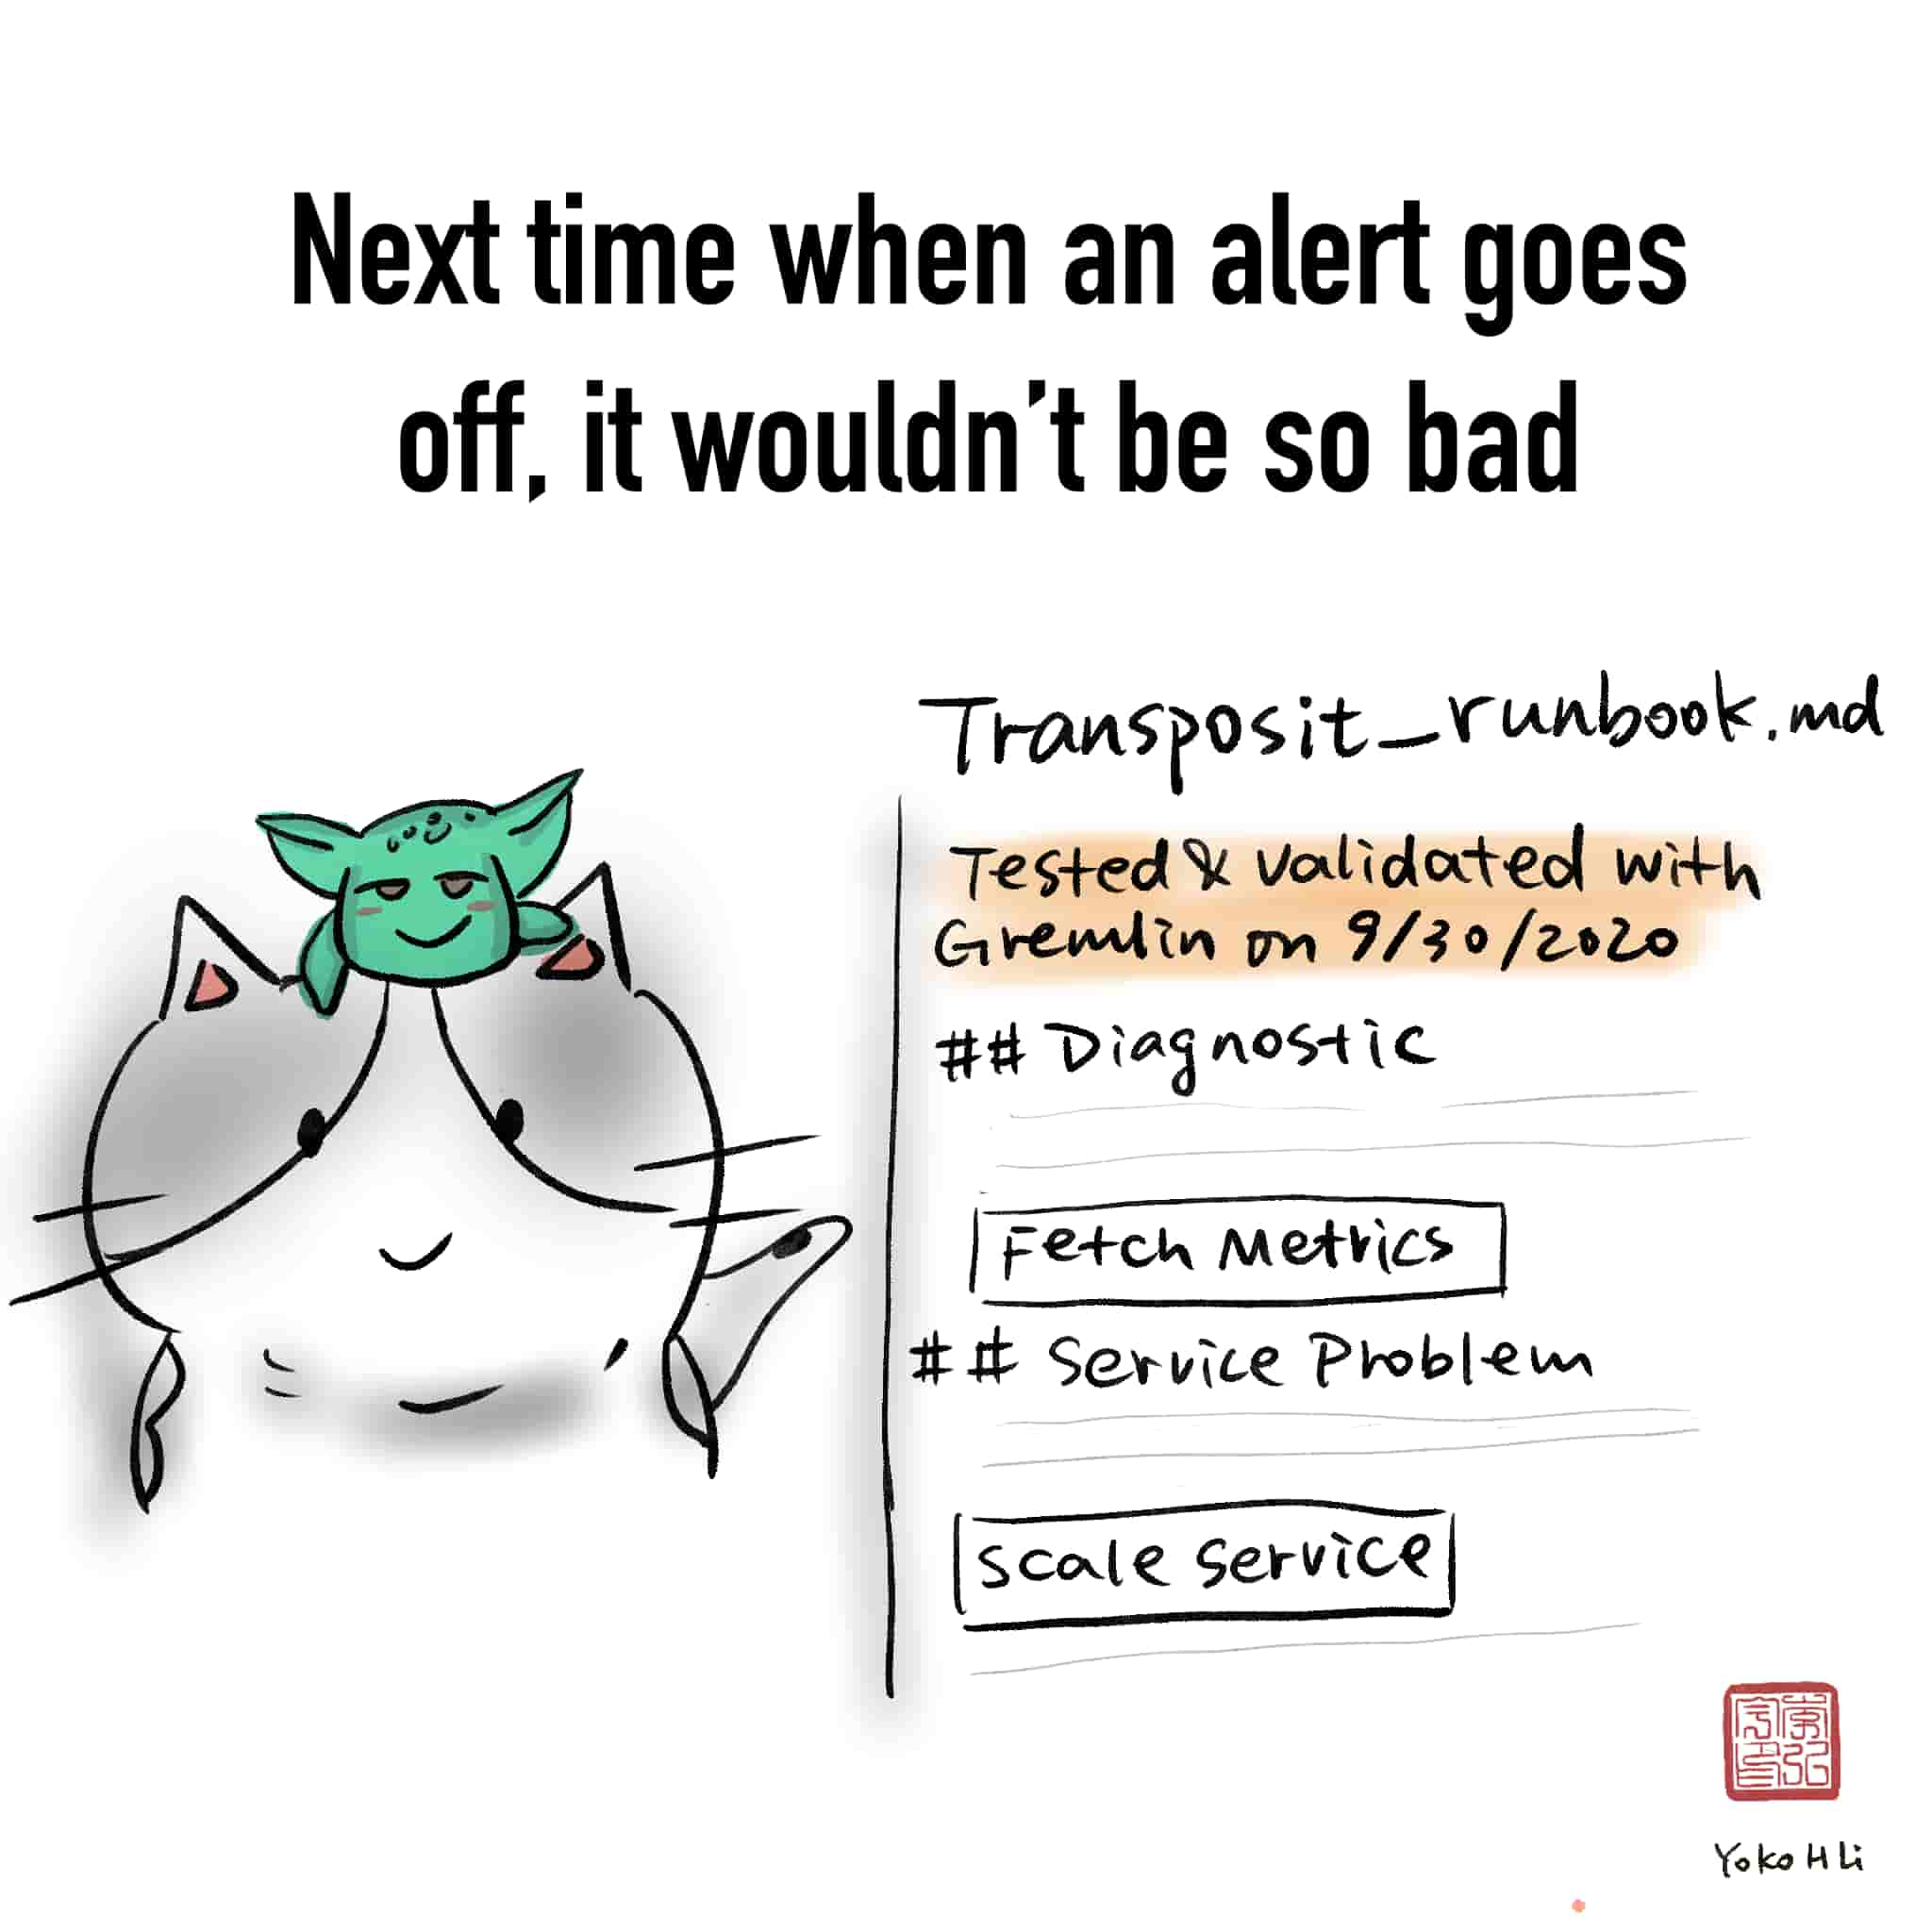 Comic: Next time when an alert goes off, it wouldn't be so bad. Image: Runbook with a validated with Gremlin date